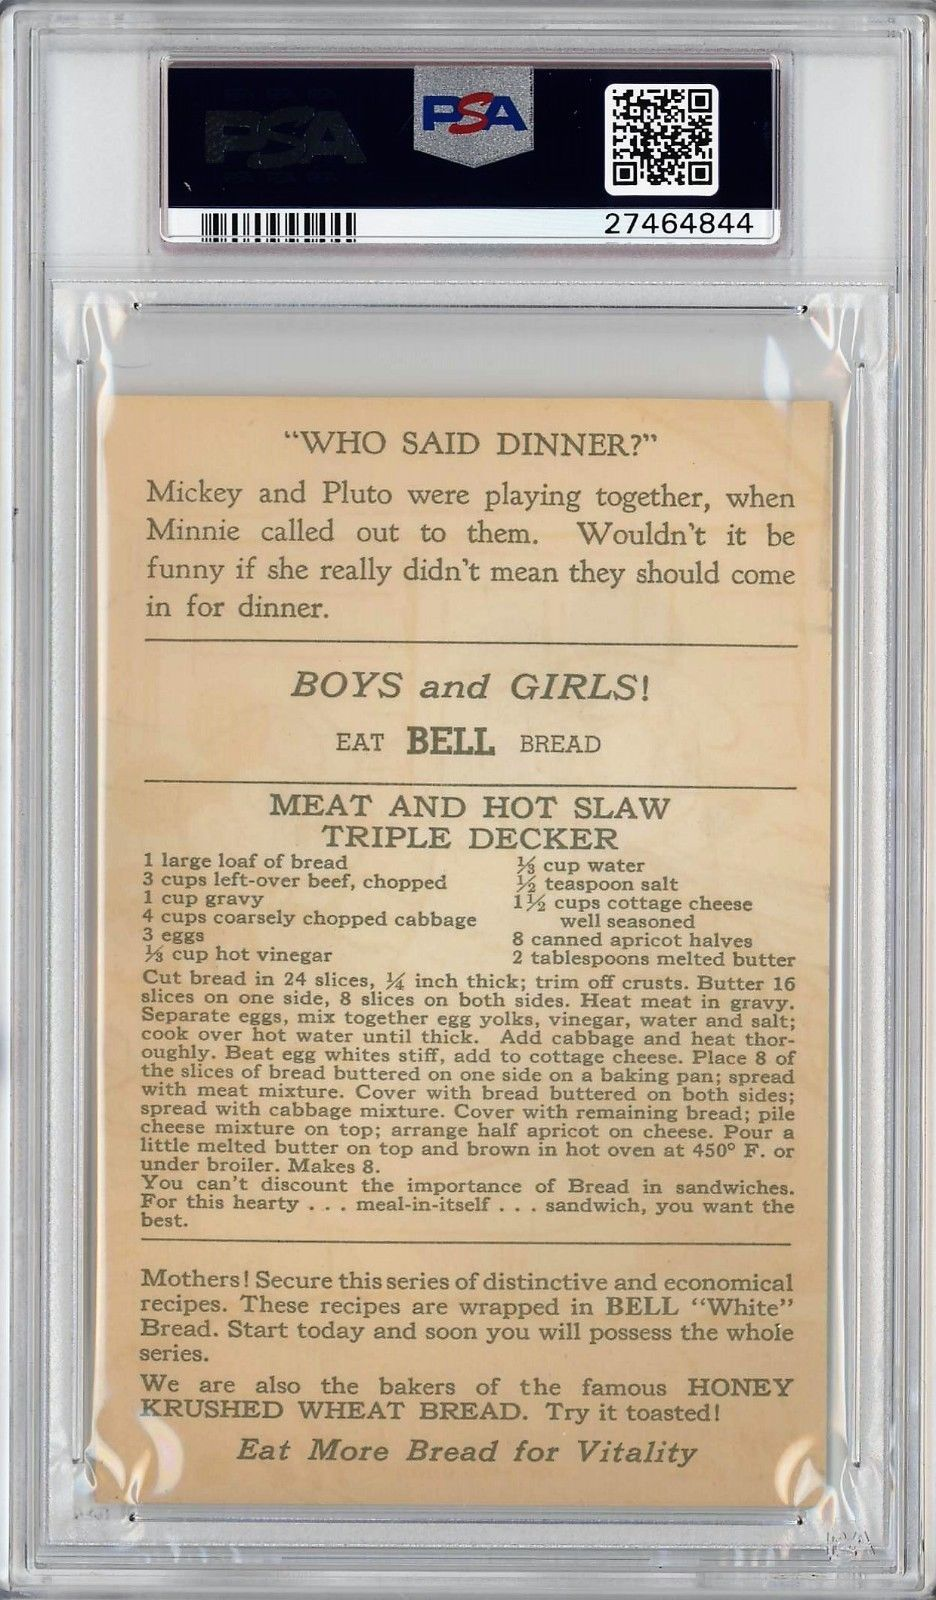 1934-35 D97 Mickey Mouse Recipes Who Said Dinner? Bell Bread PSA 3 VG